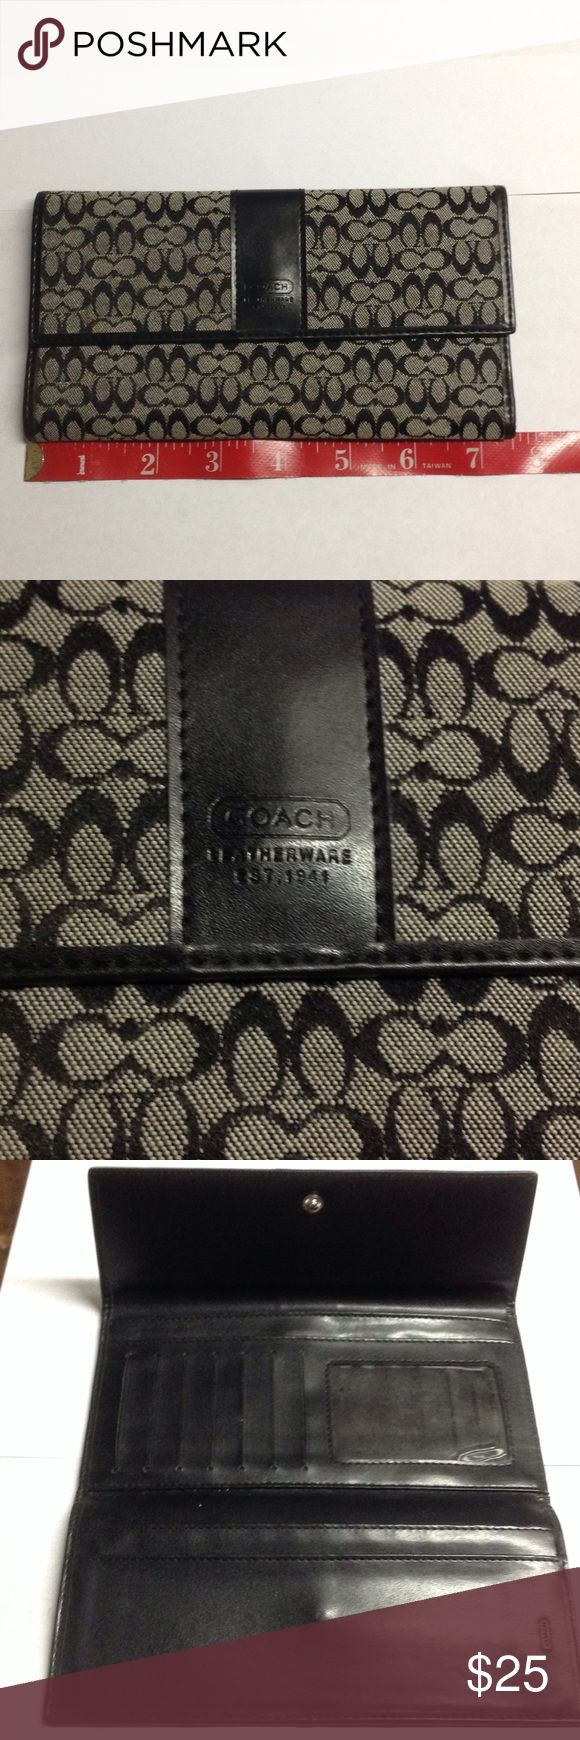 Authentic Coach wallet Used lightly,  no stains, rips or holes.                   d Coach Bags Wallets